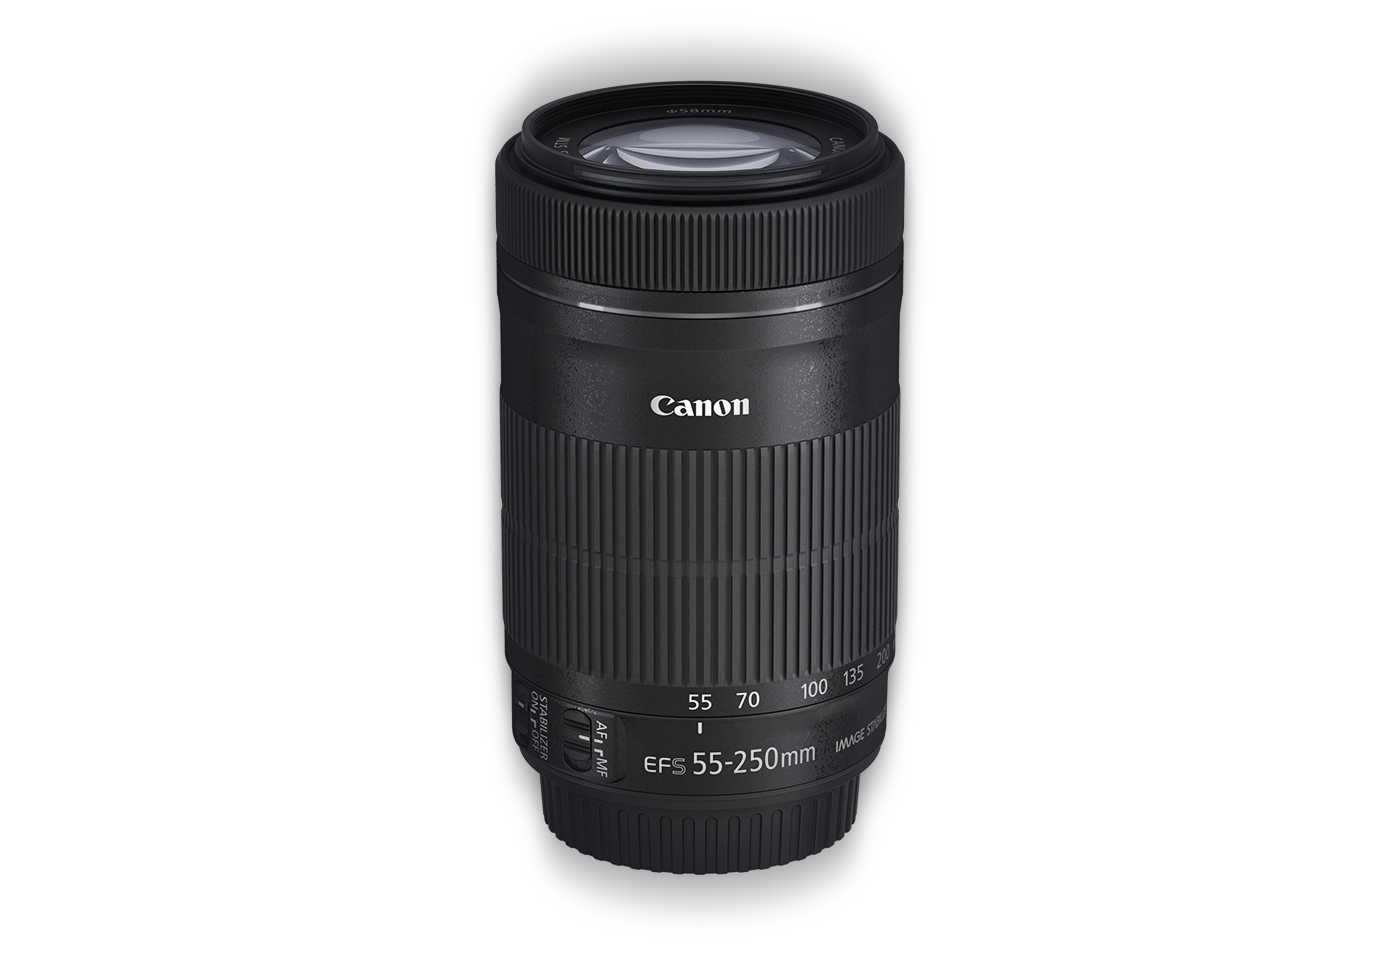 ef-s-55-250mm-f4-5.6-is-stm-product